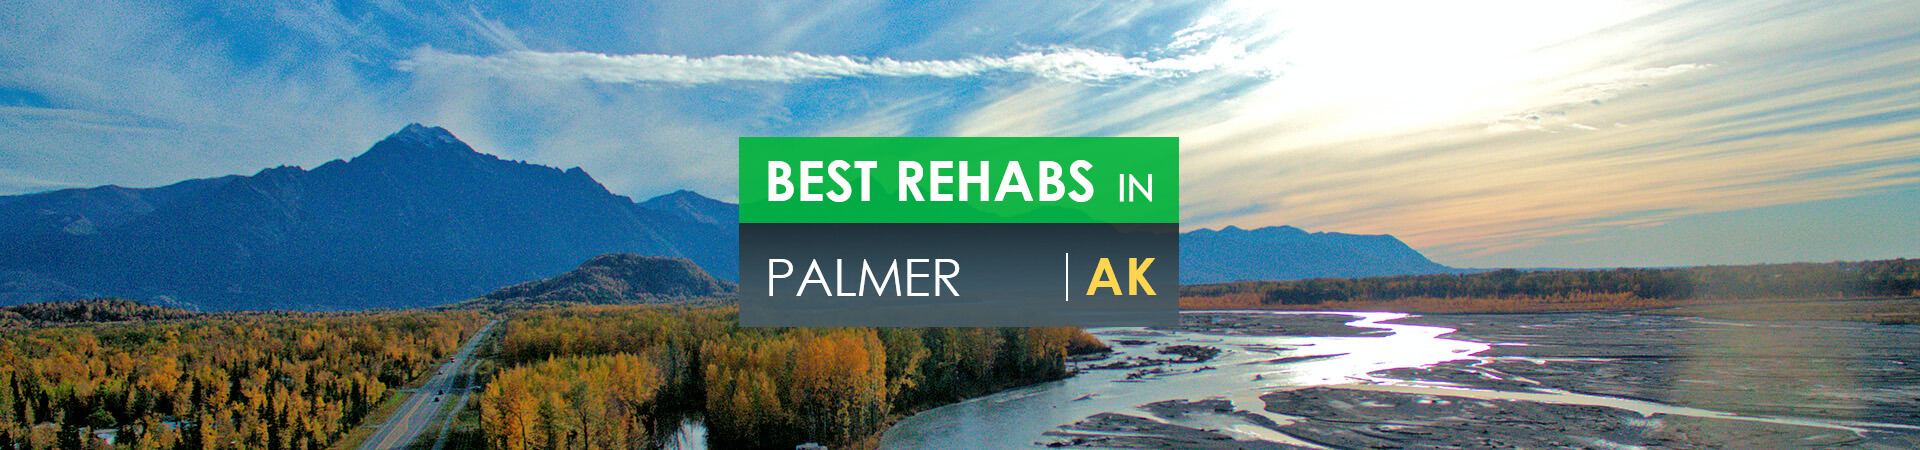 Best rehabs in Palmer, AK